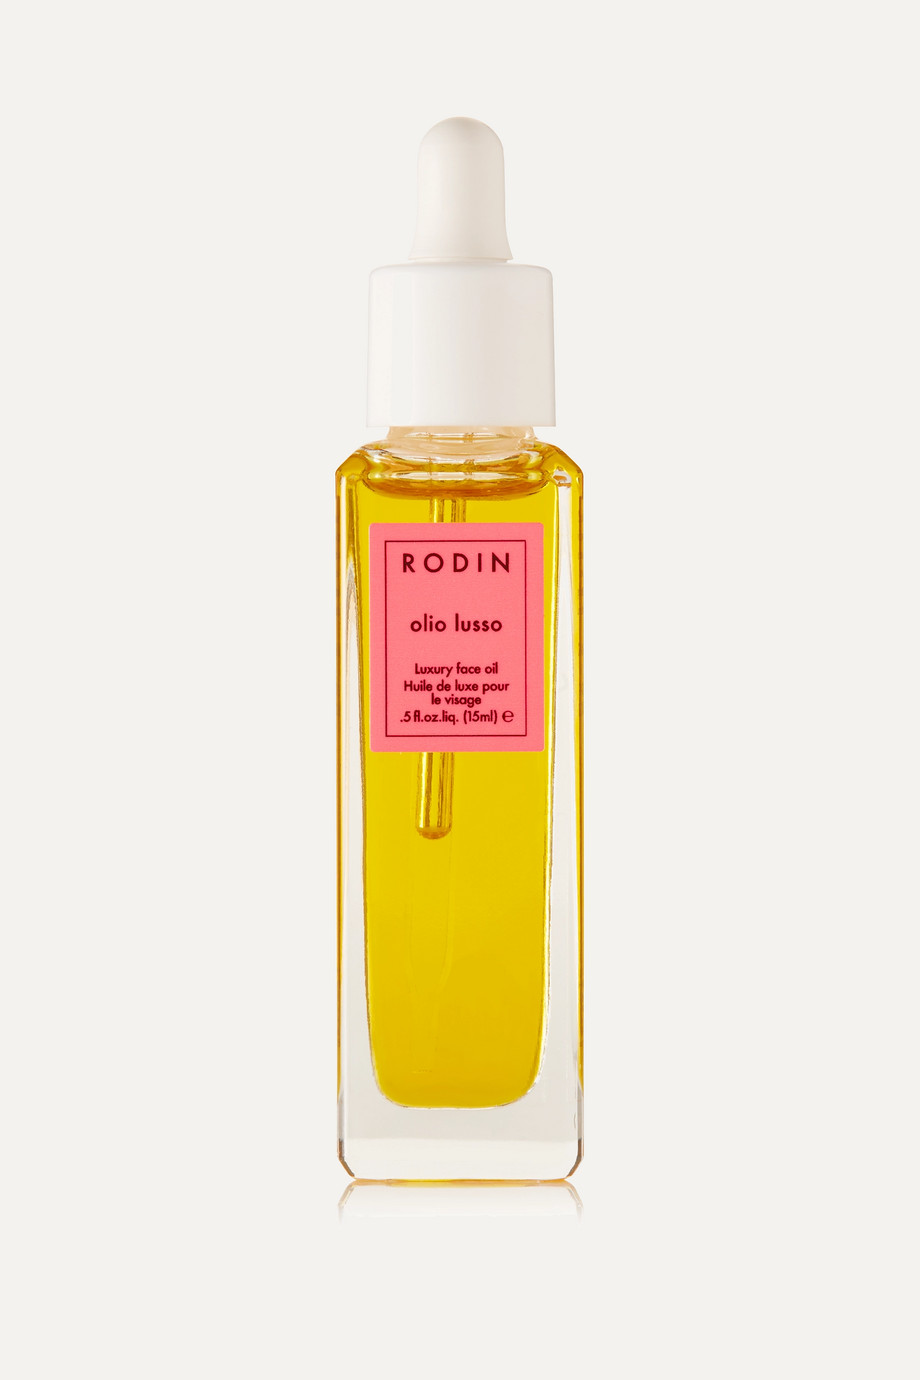 Rodin Luxury Face Oil - Geranium & Orange Blossom, 15ml